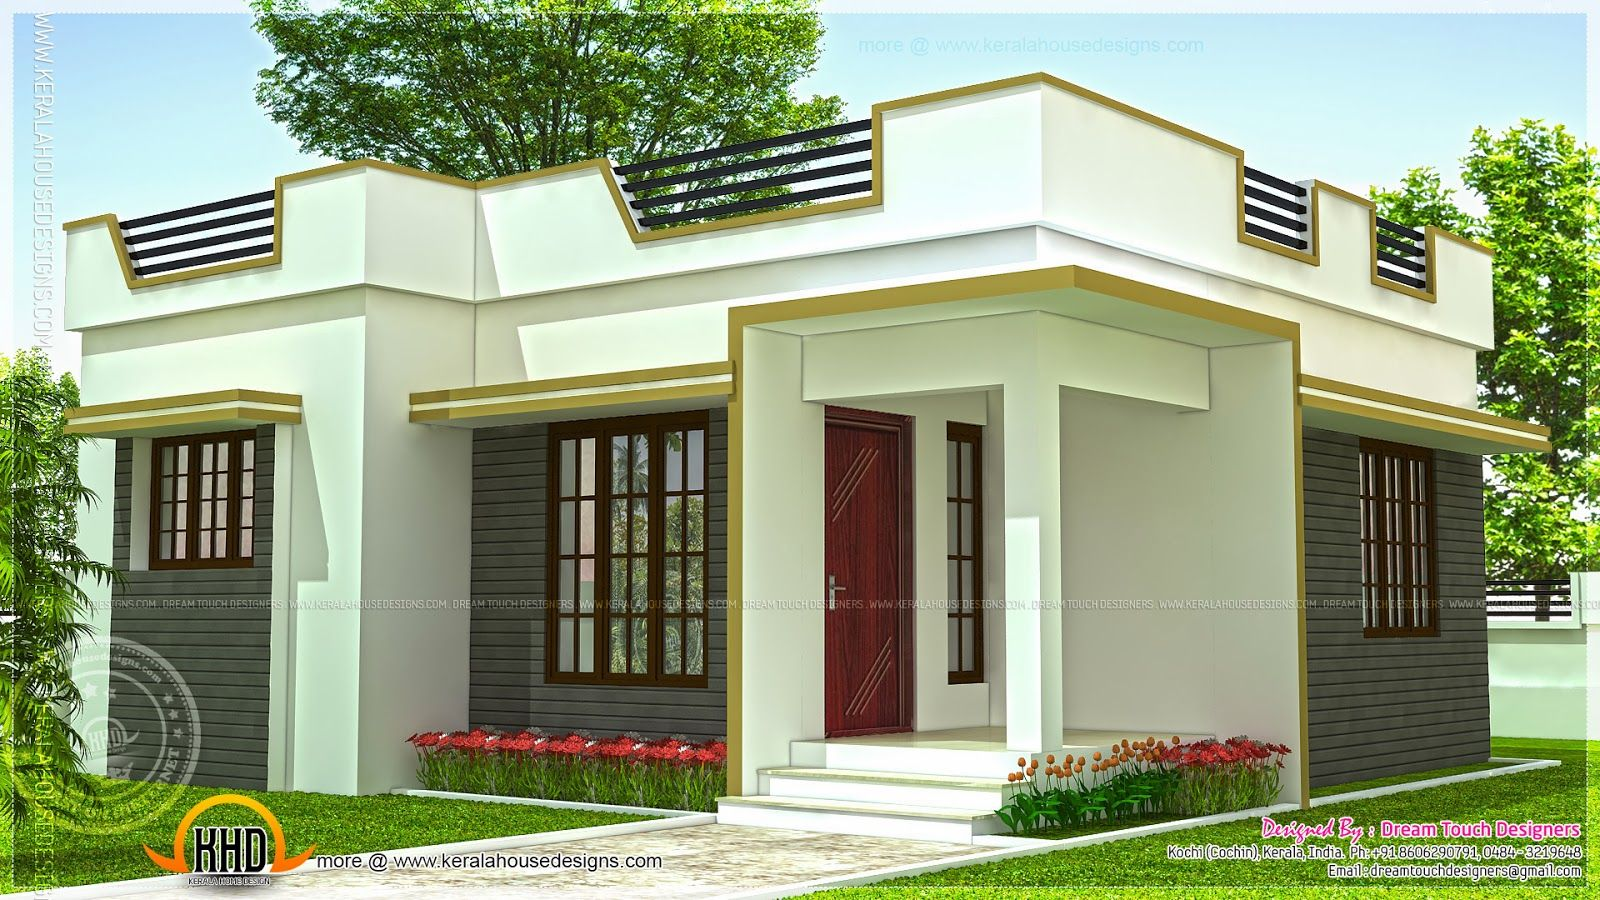 Lately 21 small house design kerala small house for Small rest house designs in philippines